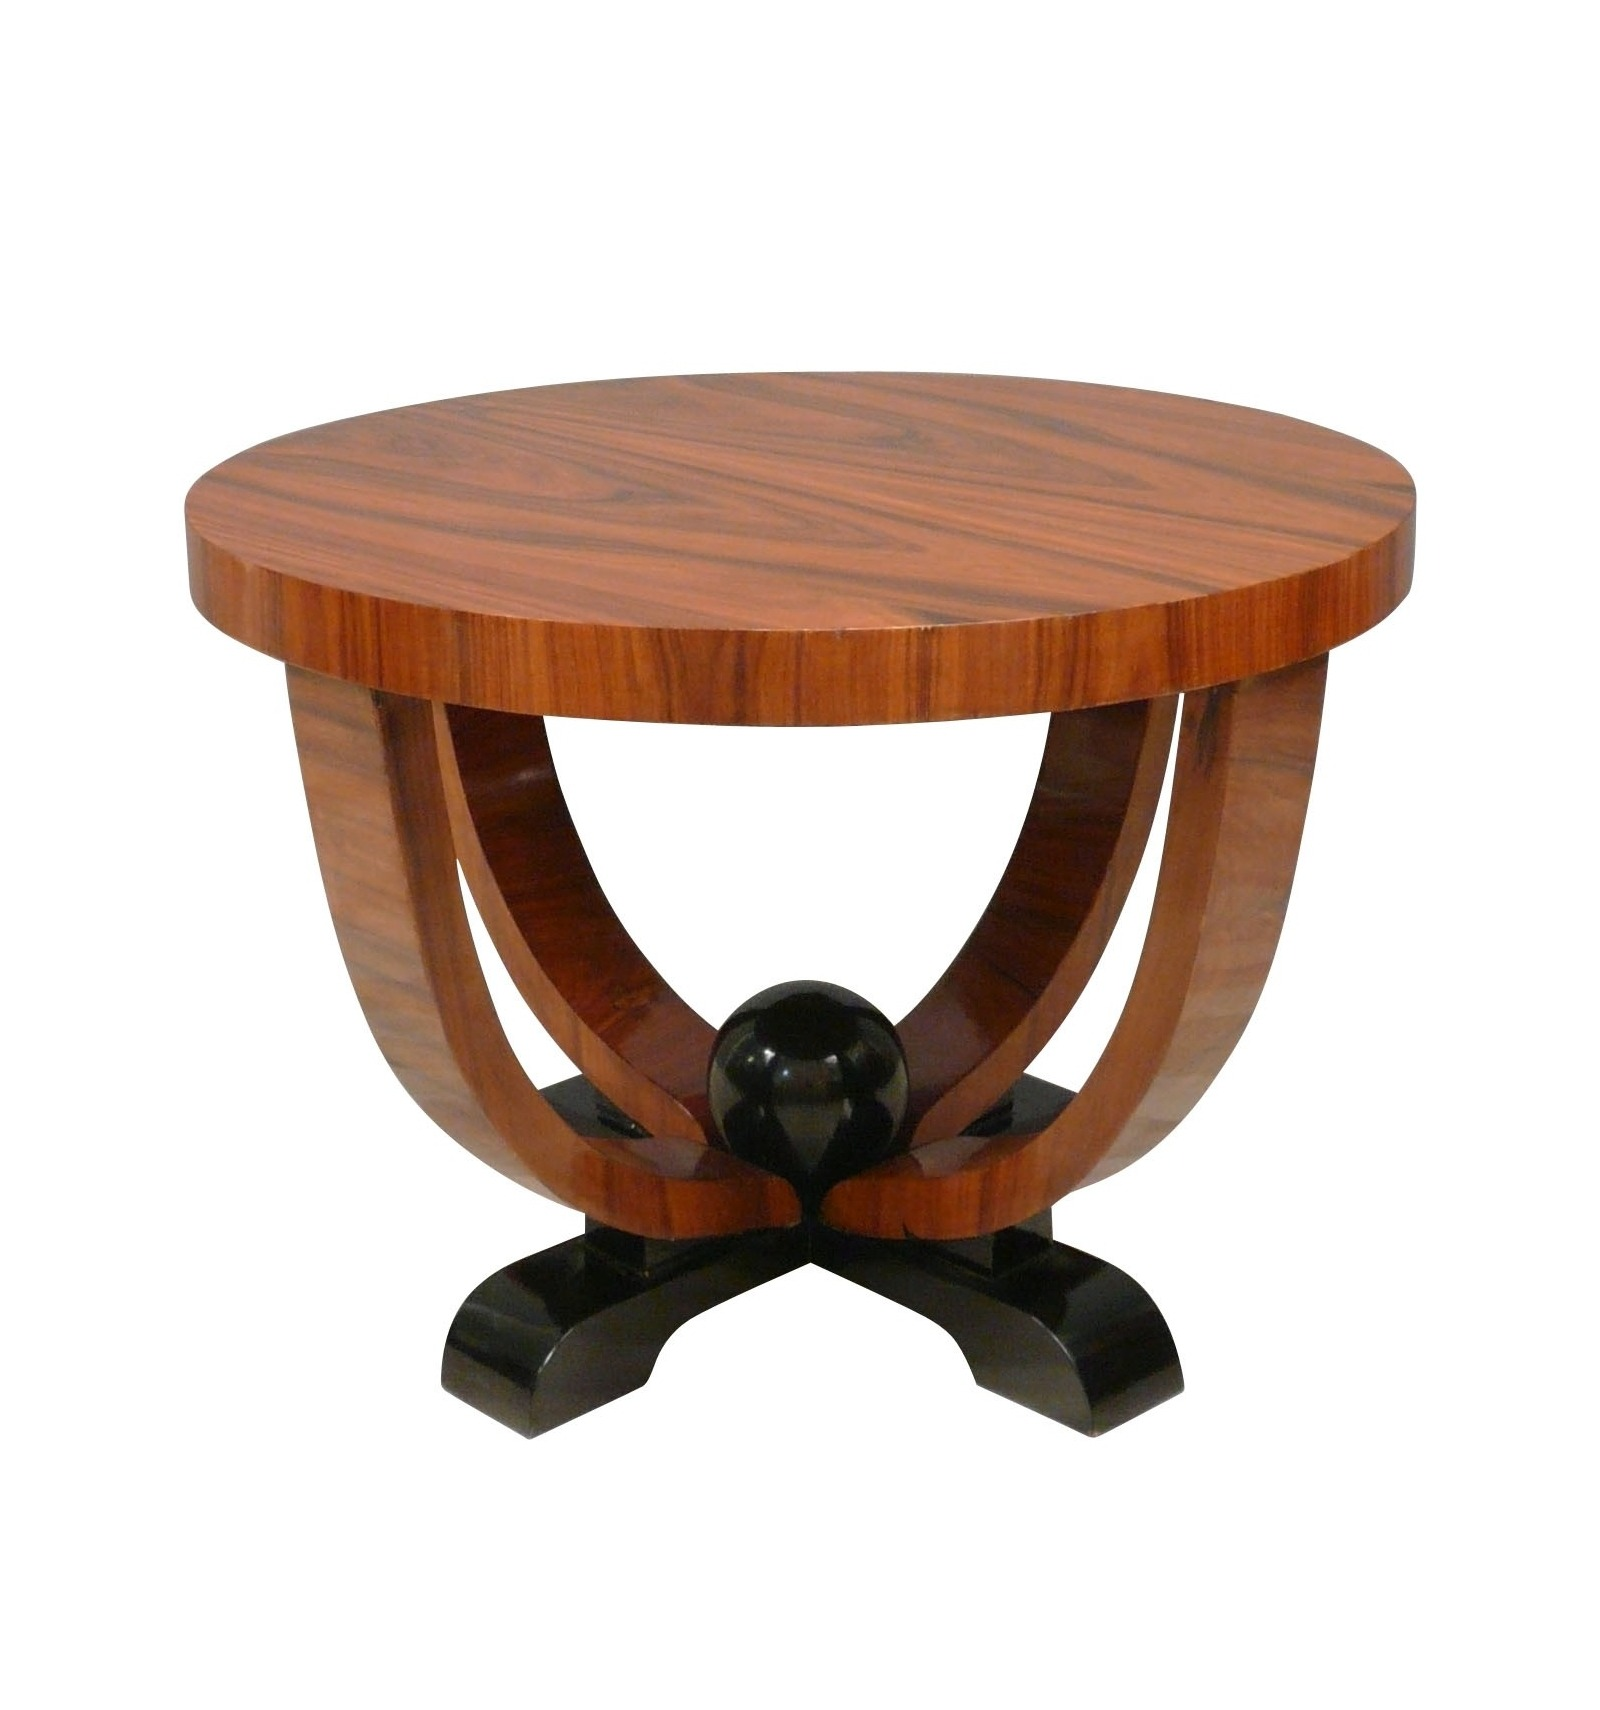 Table basse art d co ronde mobilier de style - Deco pour table basse ...